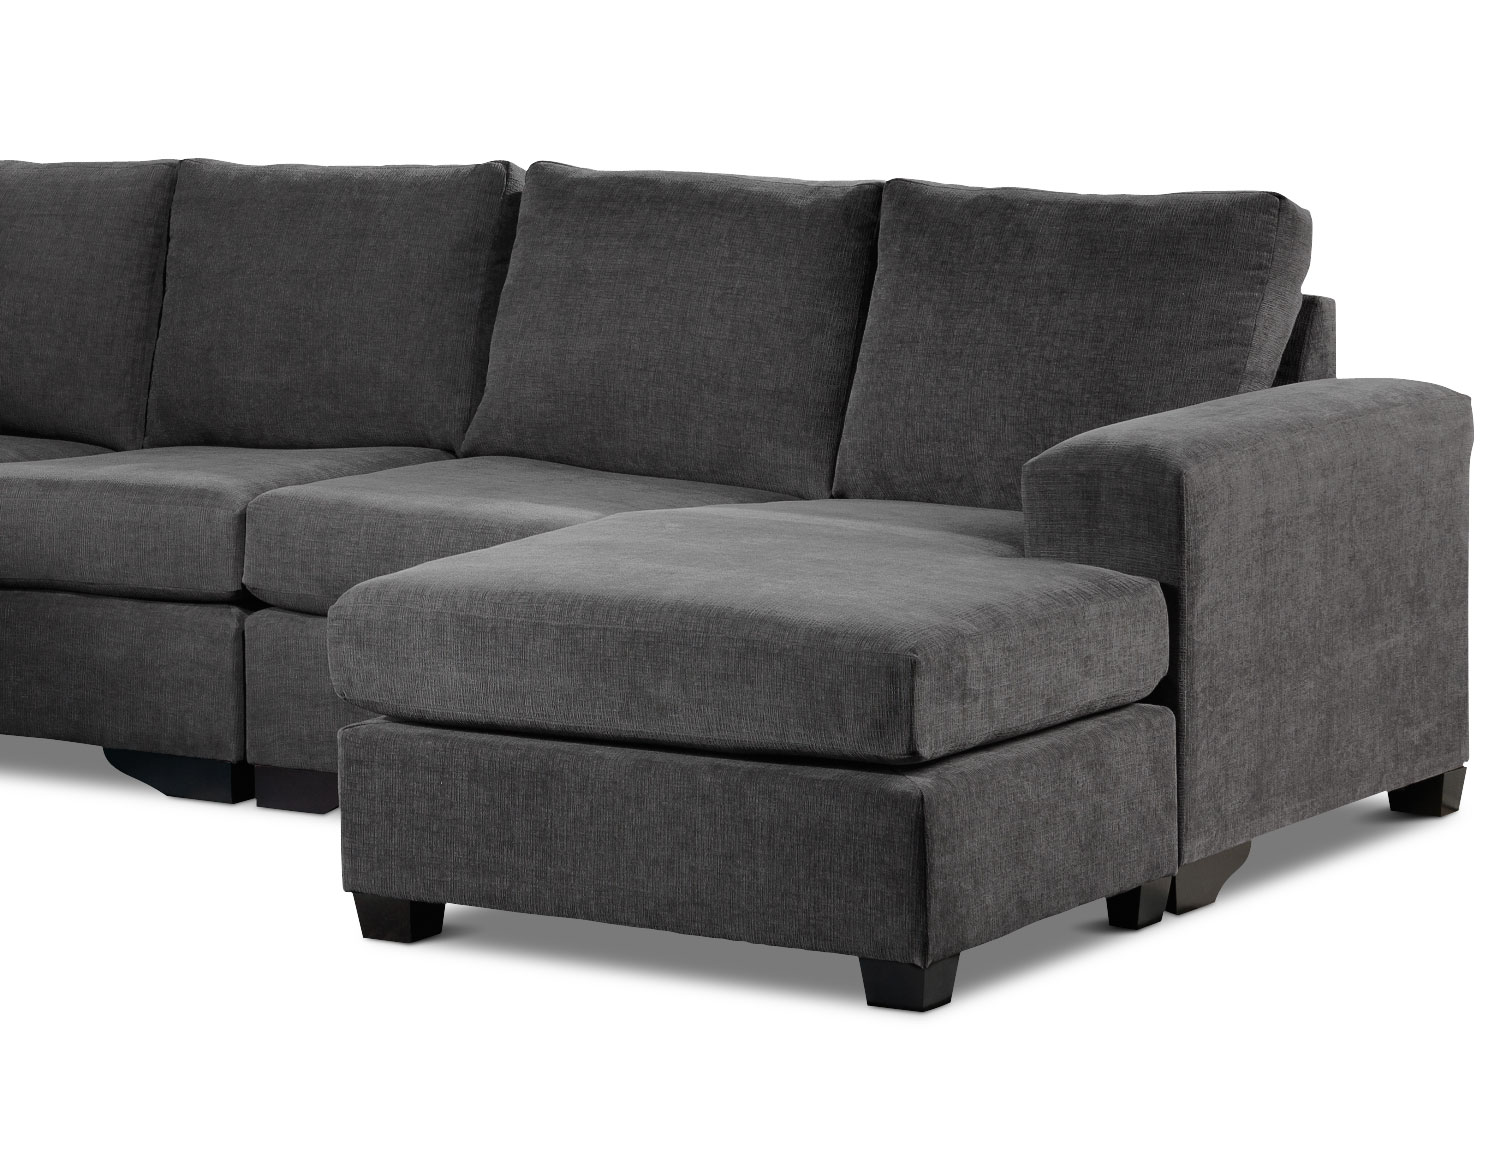 Leons Furniture Kitchener Danielle 3 Piece Sectional With Right Facing Corner Wedge Grey